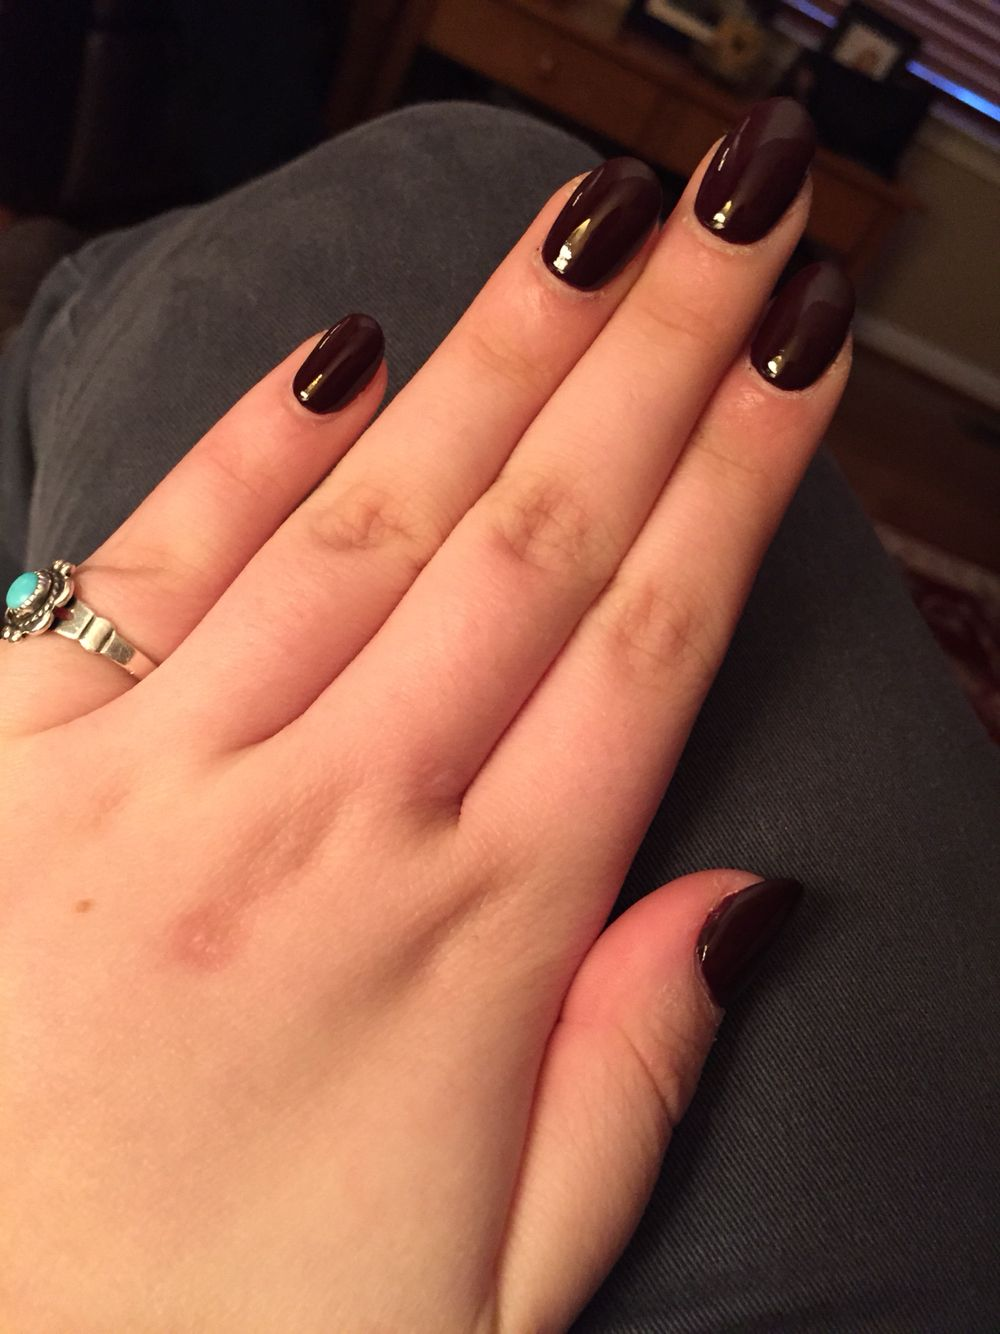 Dark Purple Rounded Acrylic Nails I Am In Love With My Nails Nagels